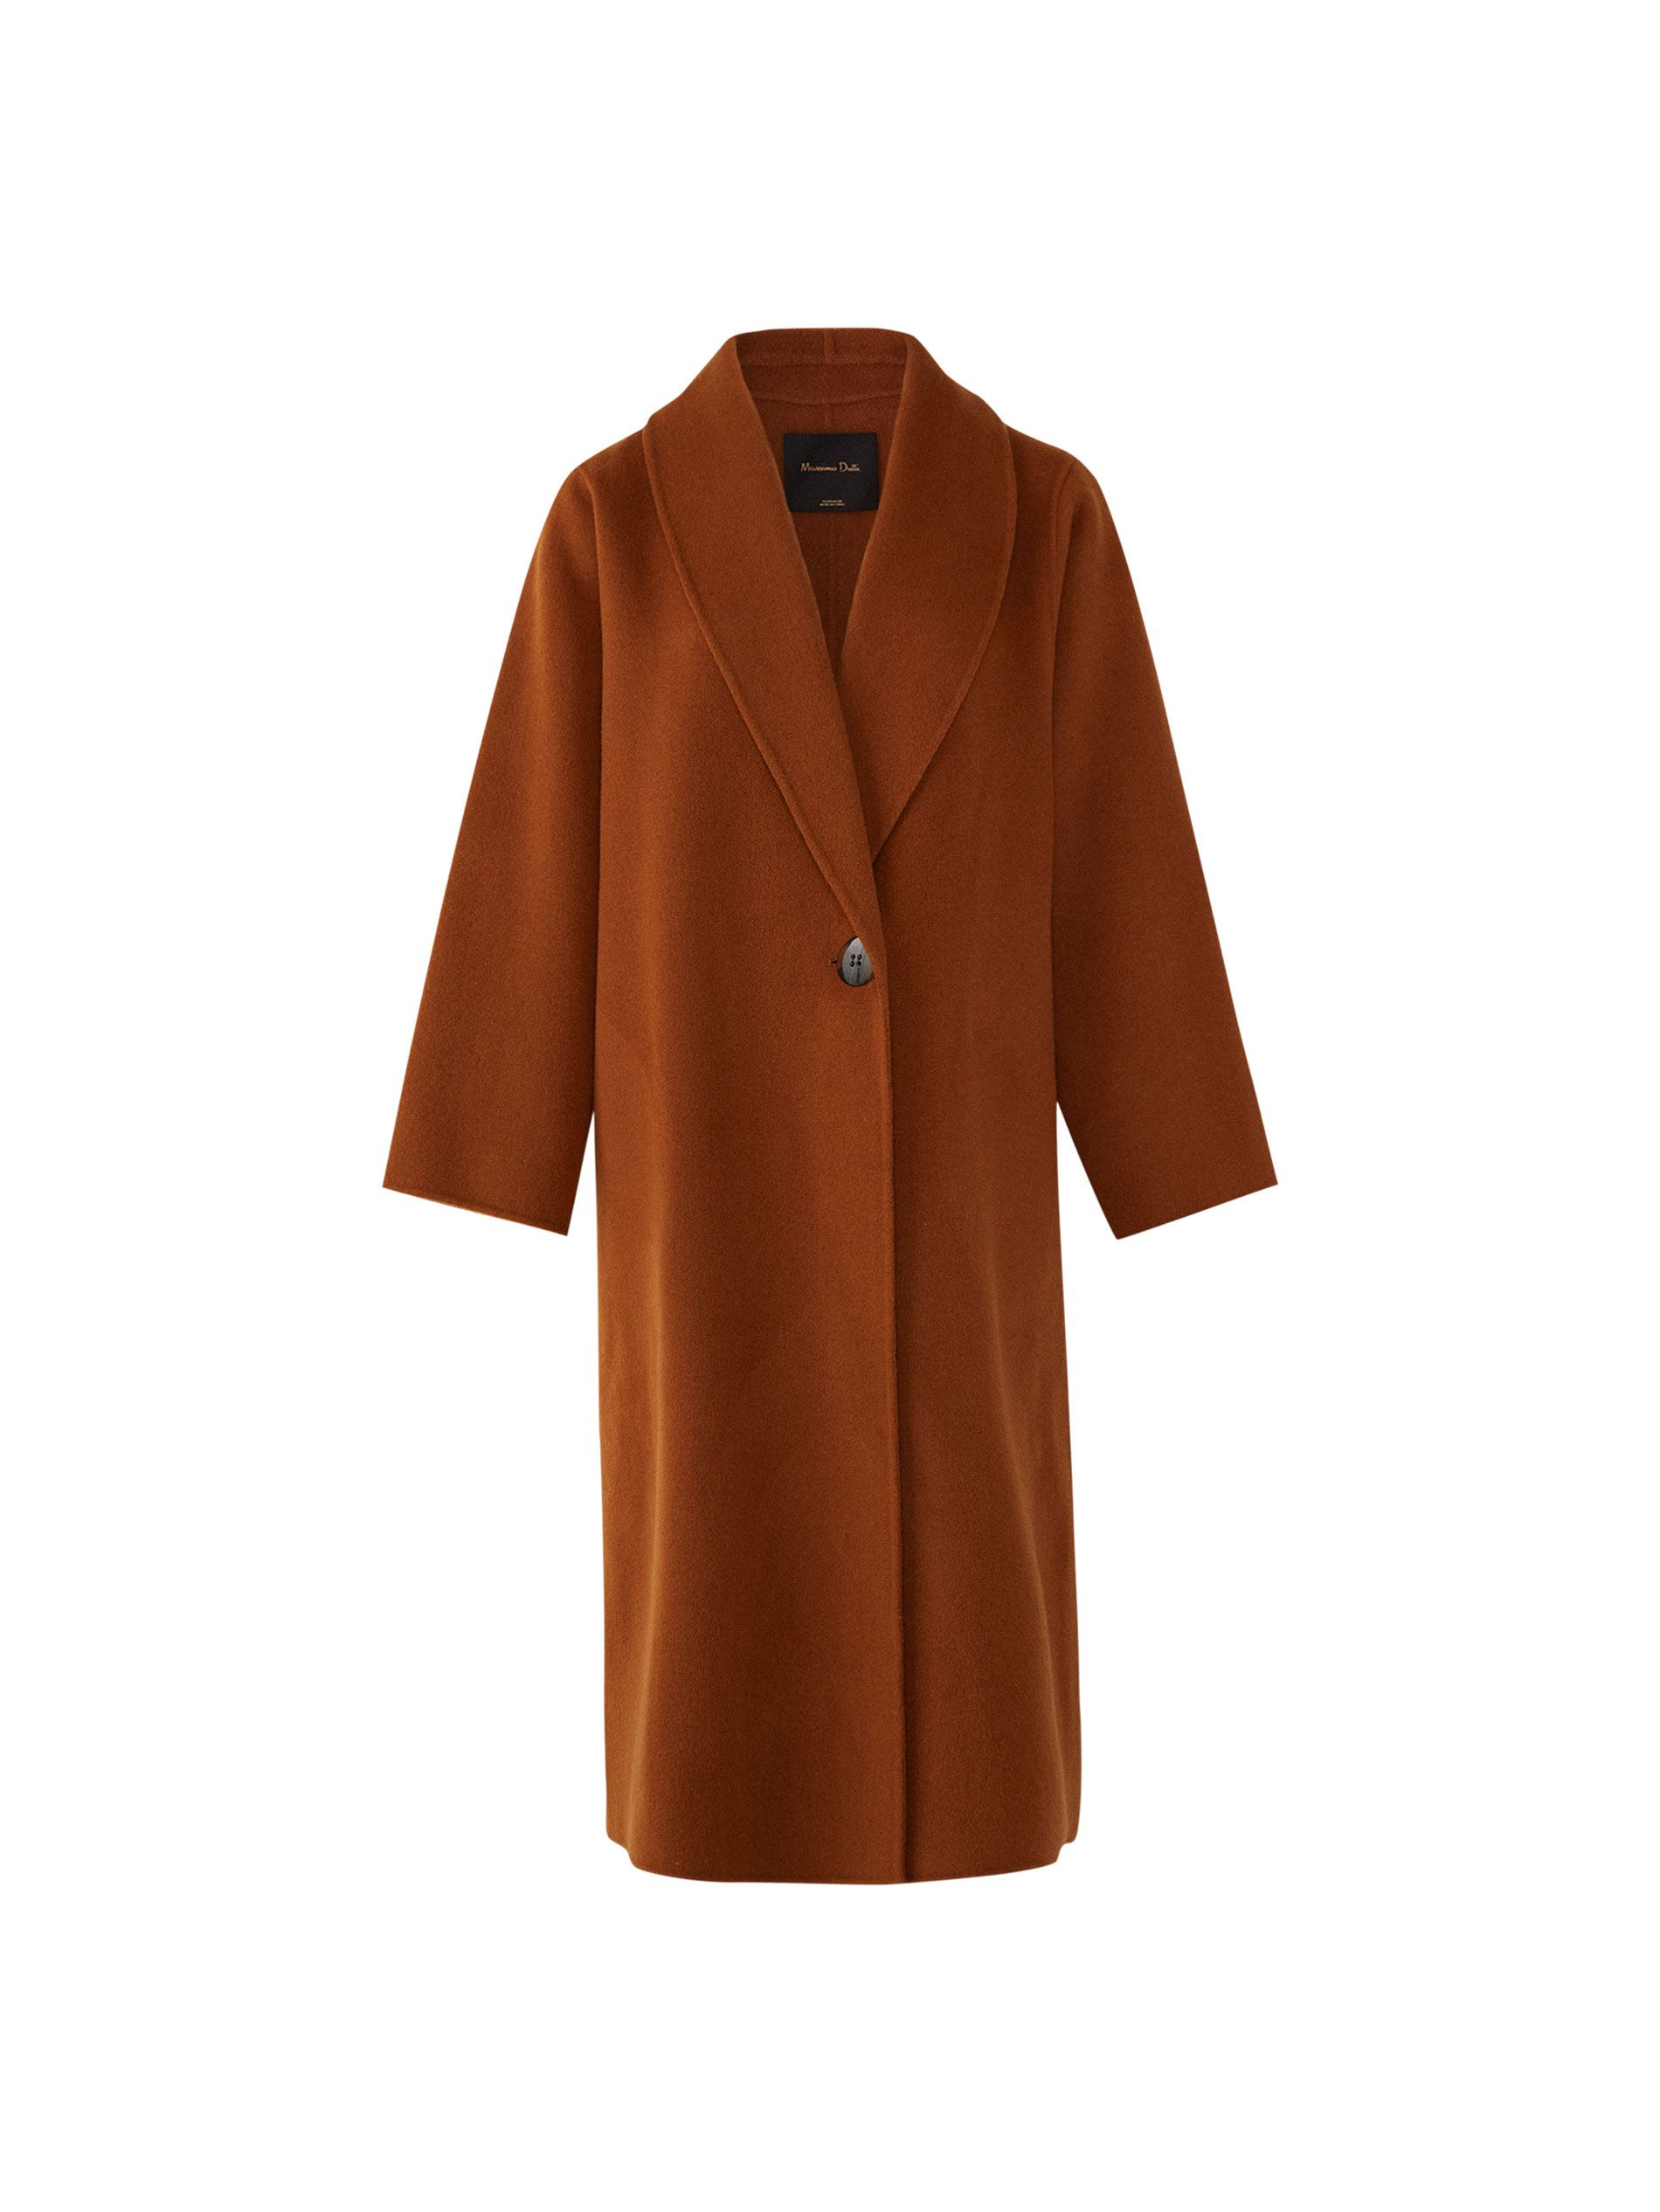 9305734c68469e Plain coat. Features a straight fit, lapel collar, single-button fastening,  two side pockets, long sleeves and lining. The back length for size M is  113.6 ...